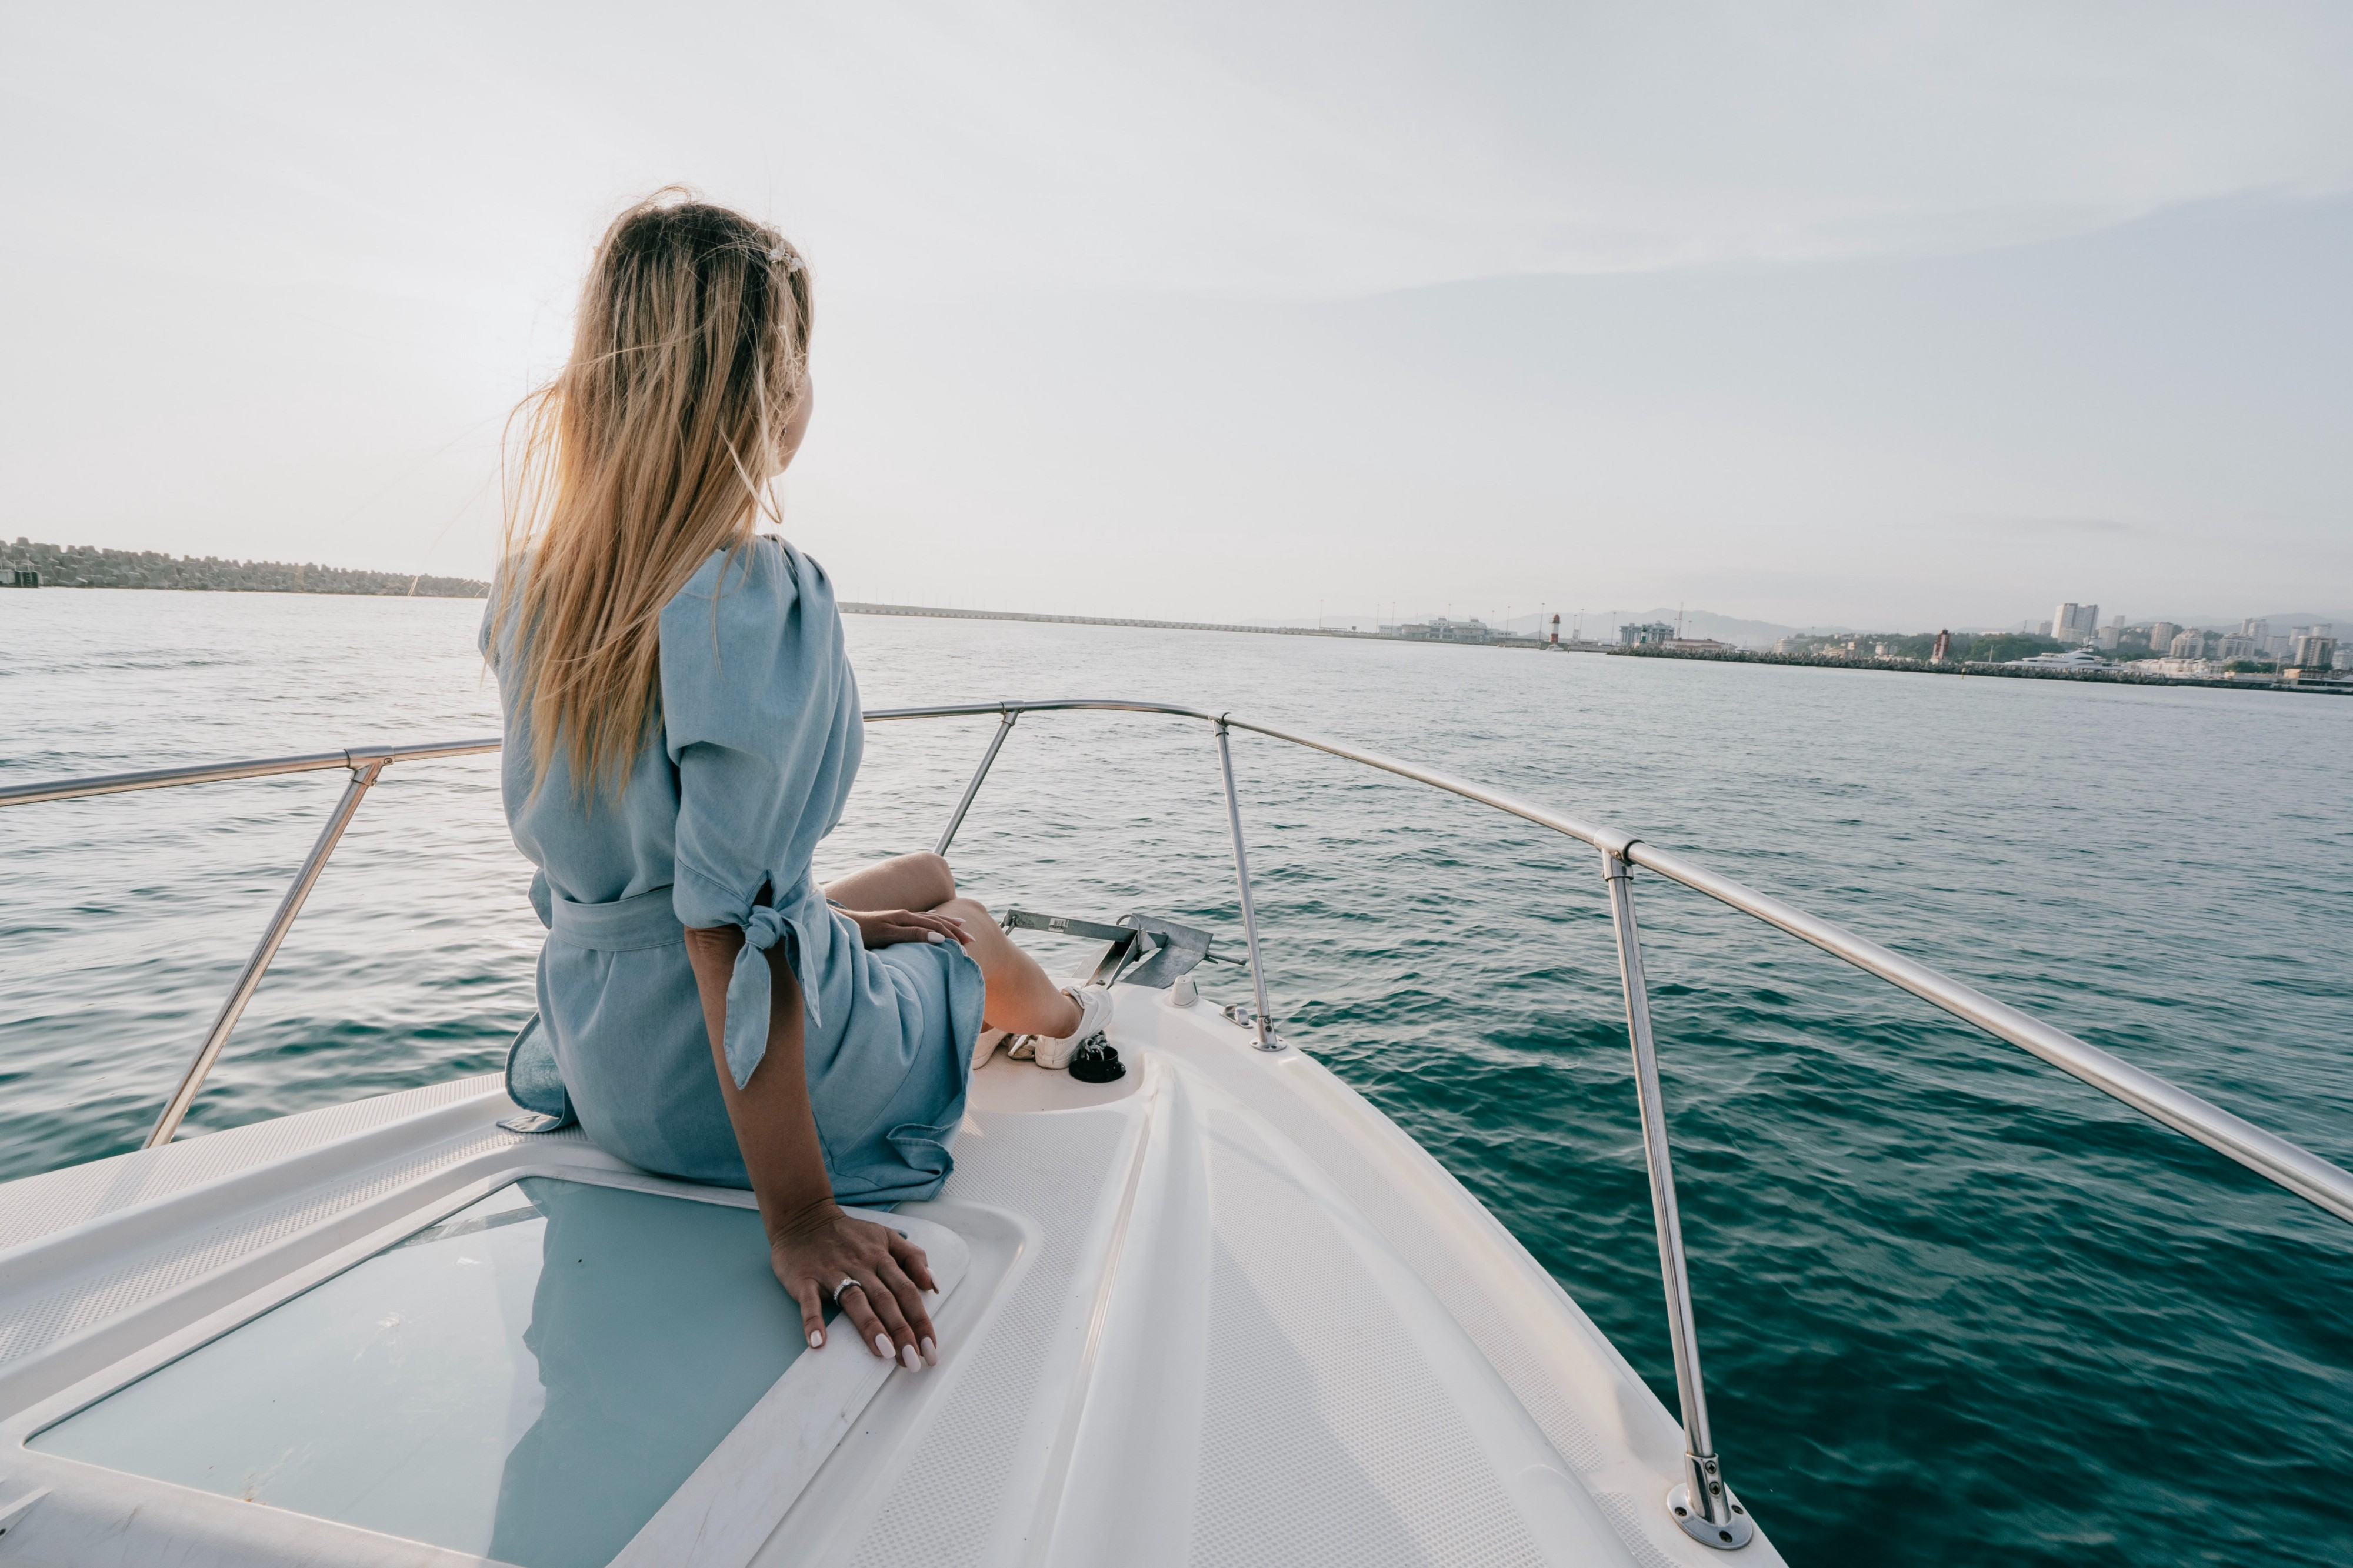 Woman in a blue dress sitting on the bow of a boat at sea during daytime.